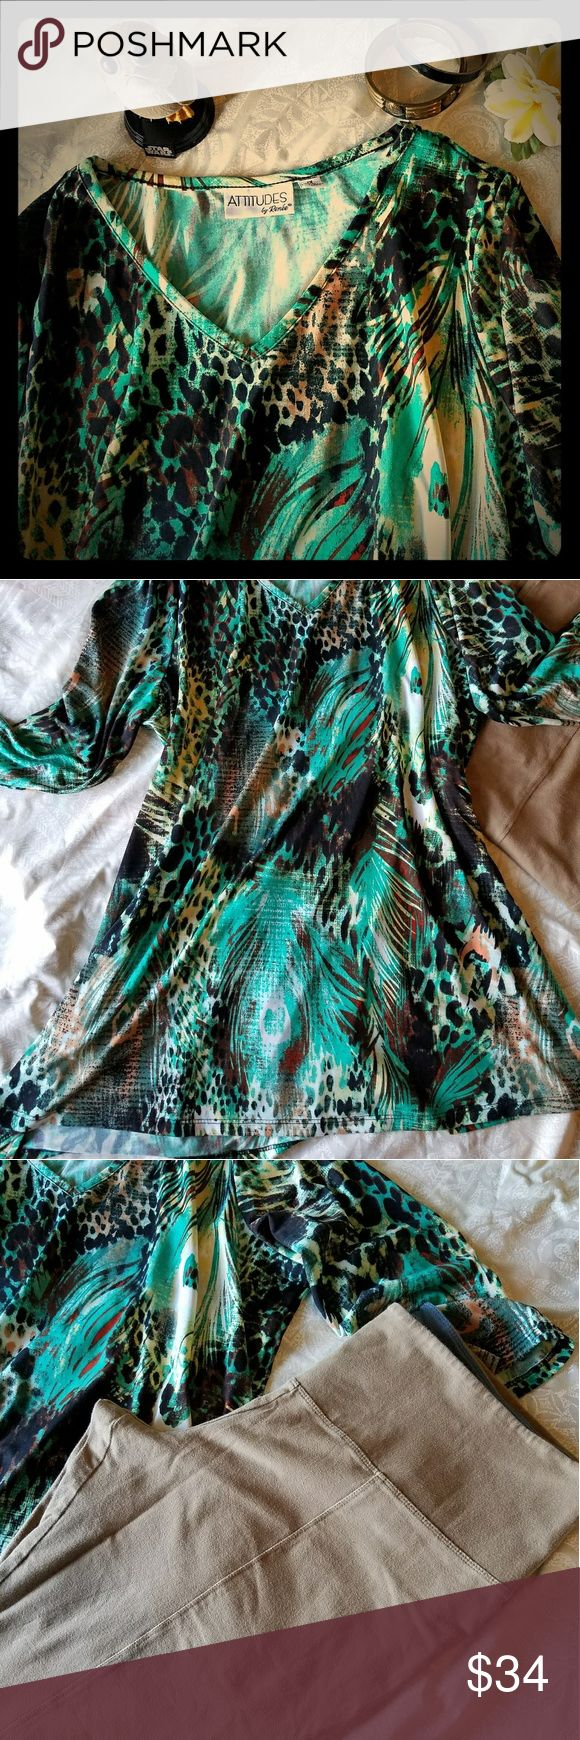 """Tropical Tunic/Pant 2- piece Set 🎉Pre-loved Poly/spandex 'Attitudes by Renee' tunic is 23"""" pit to pit, 29""""length. Wears well and flows nicely. Great condition.  🎄  Crop pants are Cotton/spandex 'Women with Control' size LP with nice stretch. 17"""" flat no-roll band. 22.5"""" inseam. Some piling can be removed, but are ready to wear. Very nice second skin fit to them. Tan color. Thanks for the visit! Attitudes by Renee Pants Ankle & Cropped"""